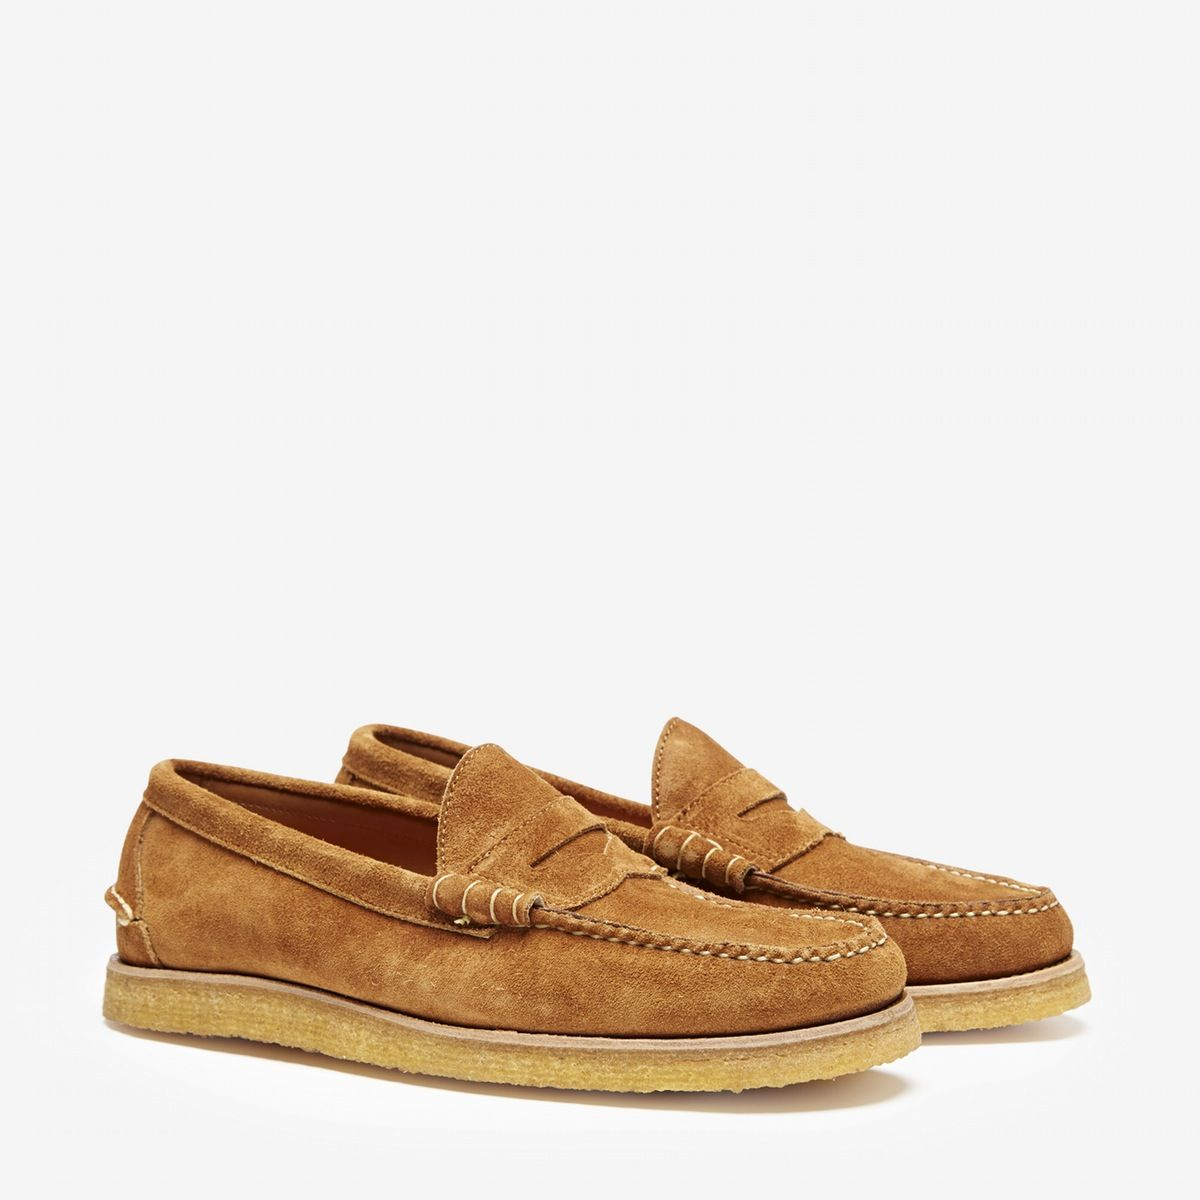 d312279f52a Oak Street Bootmakers x Bonobos Beefroll Penny Loafer in Peanut Suede with Crepe  Sole   Made in USA. (Casual Perfection!)